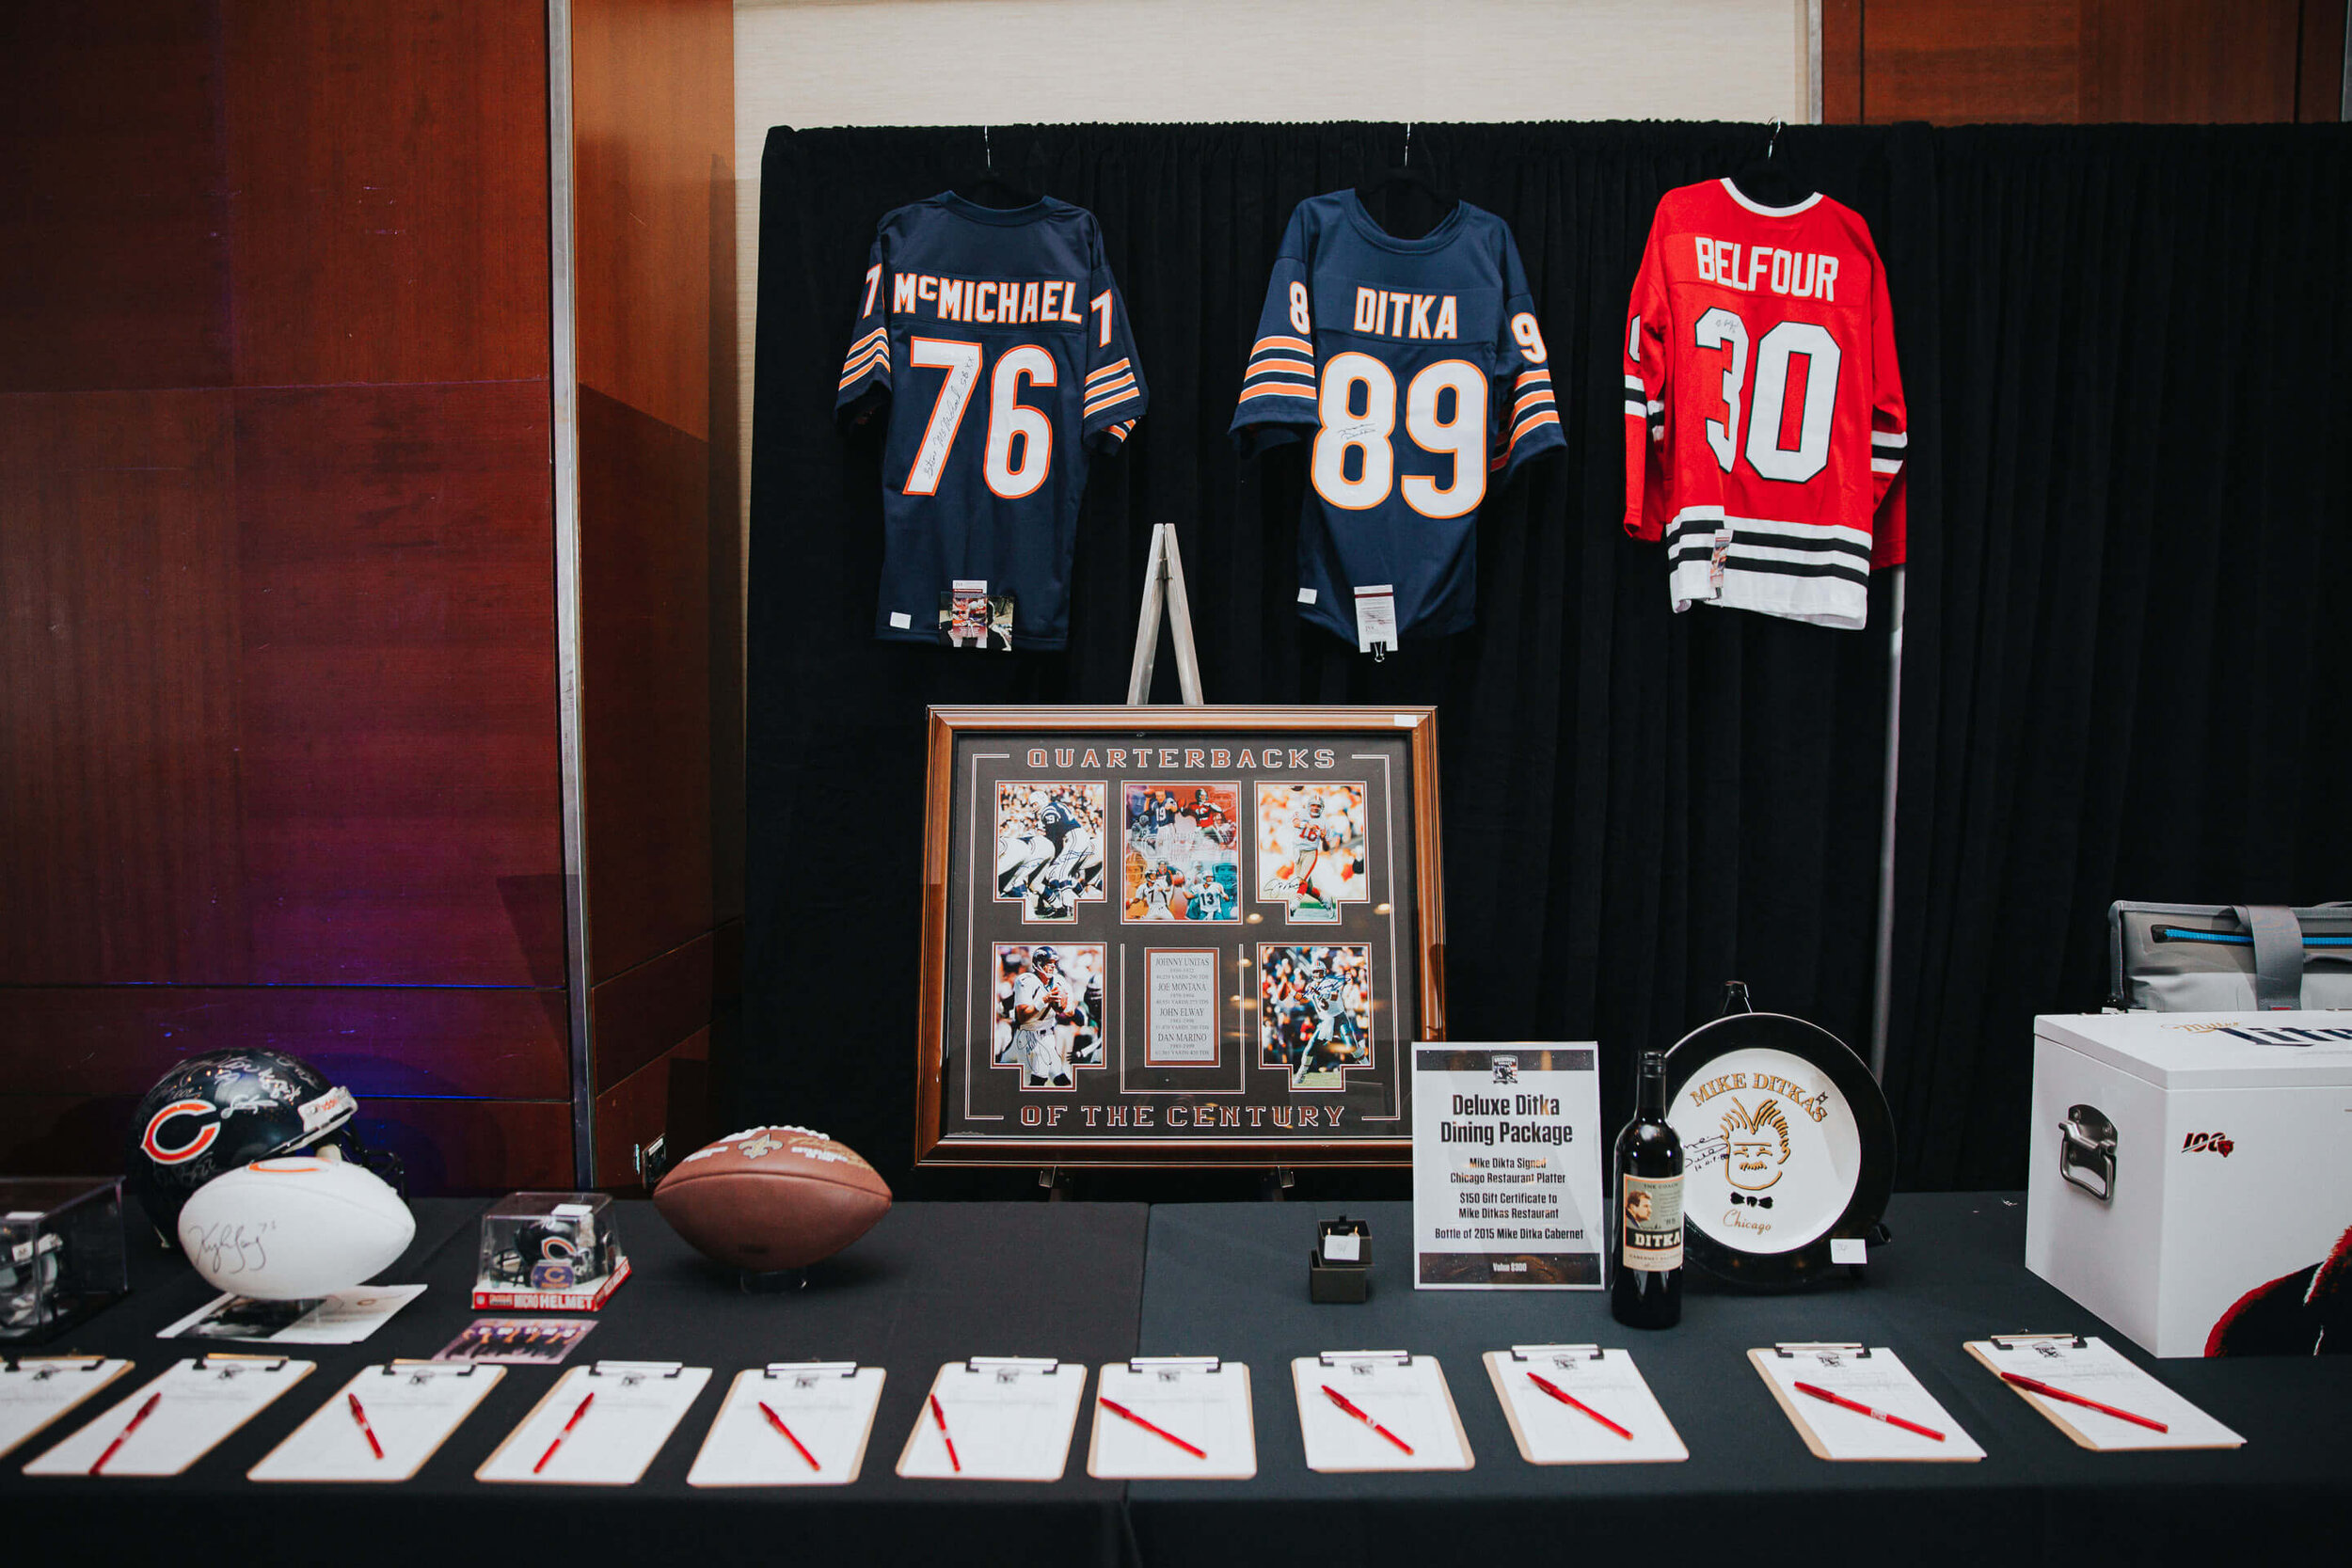 Chicago Event Photography_Gridiron Greats Assistance Fund Hall of Fame 2019_01.jpg